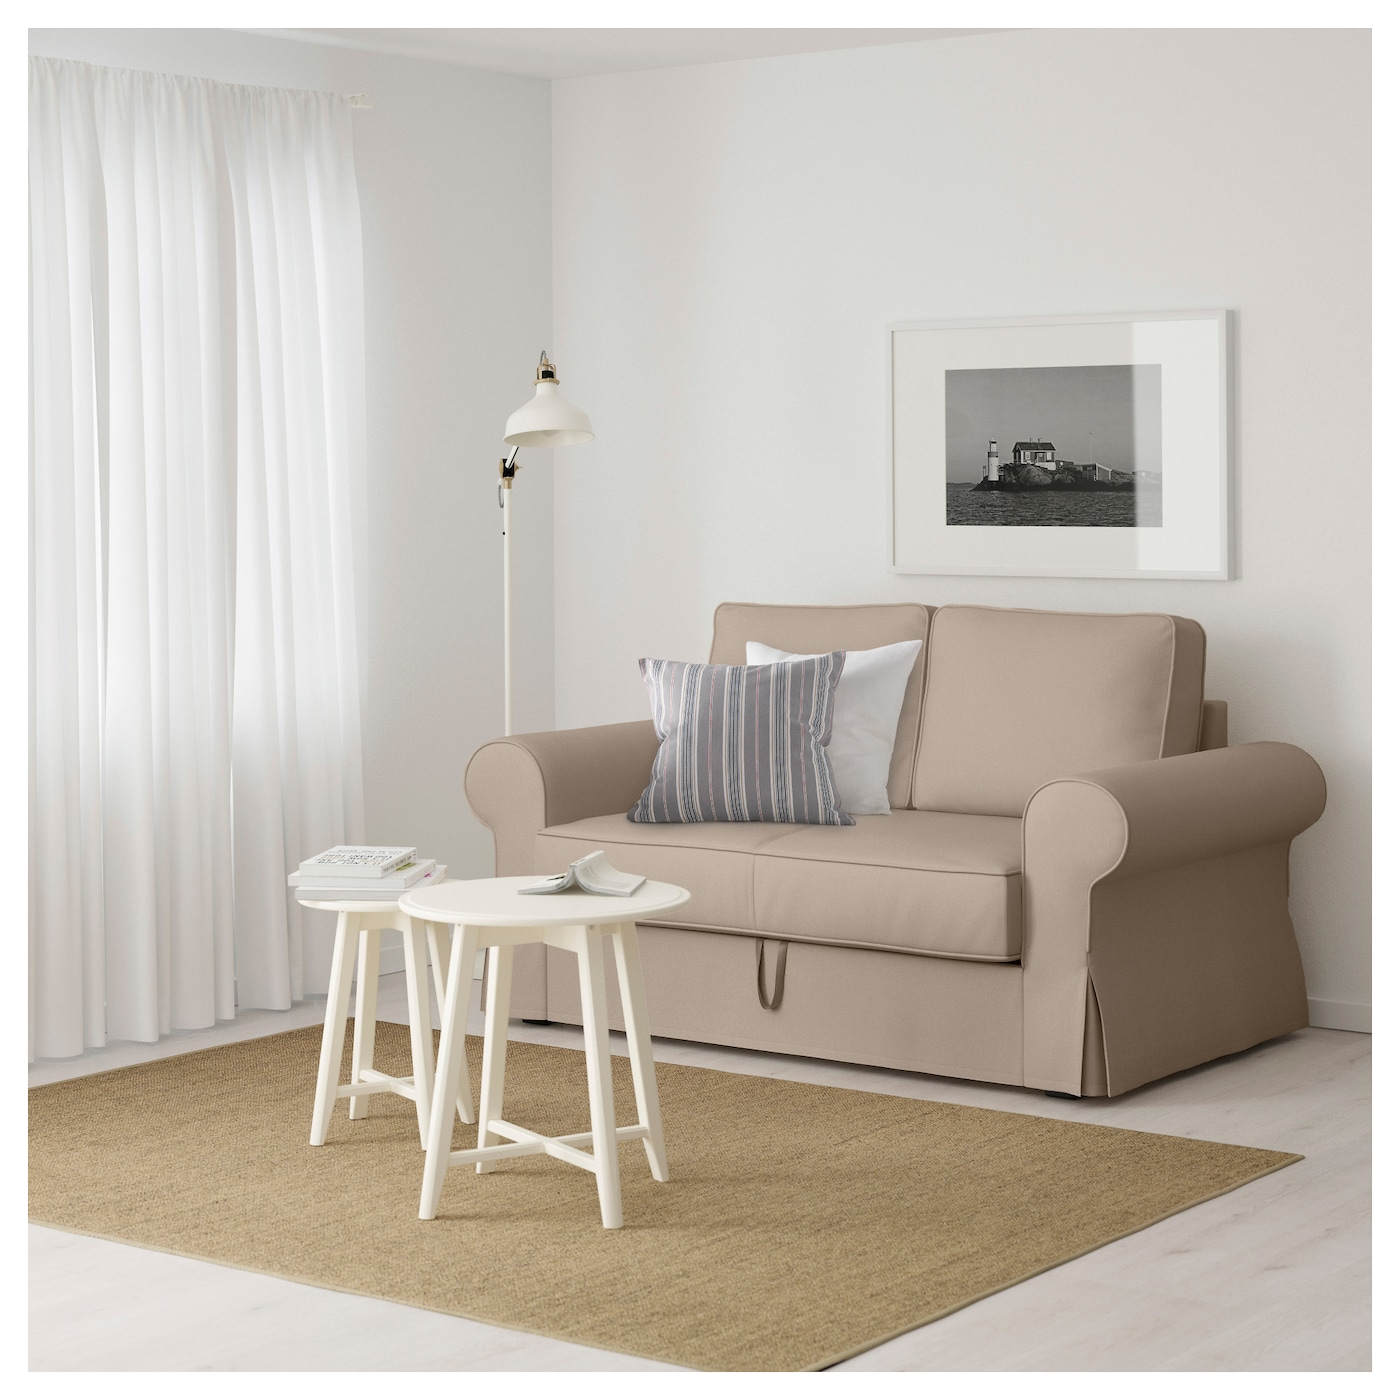 BACKABRO Two seat sofa bed Ramna beige IKEA